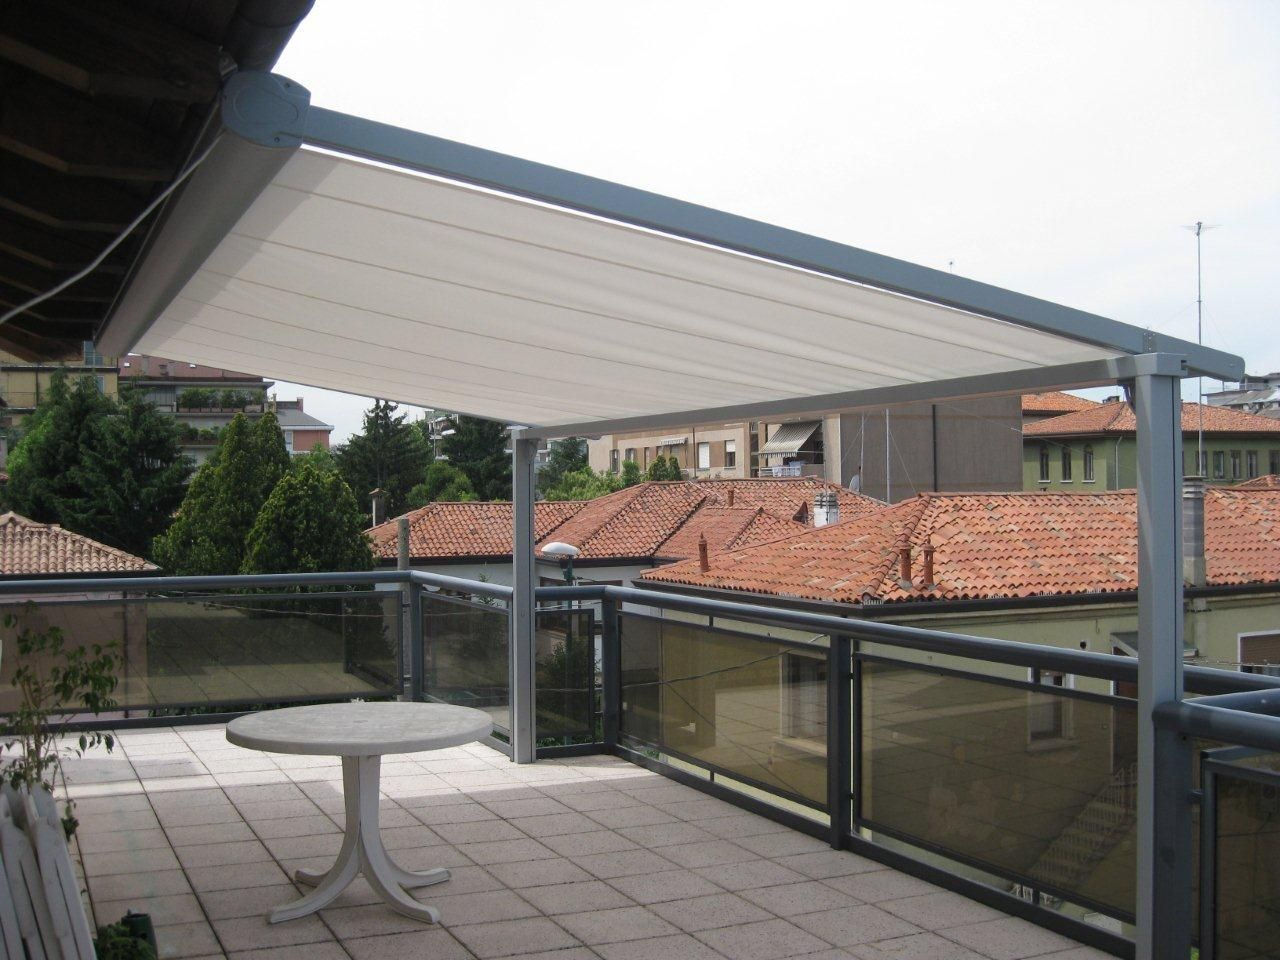 1000+ images about Outdoor awnings on Pinterest - ^